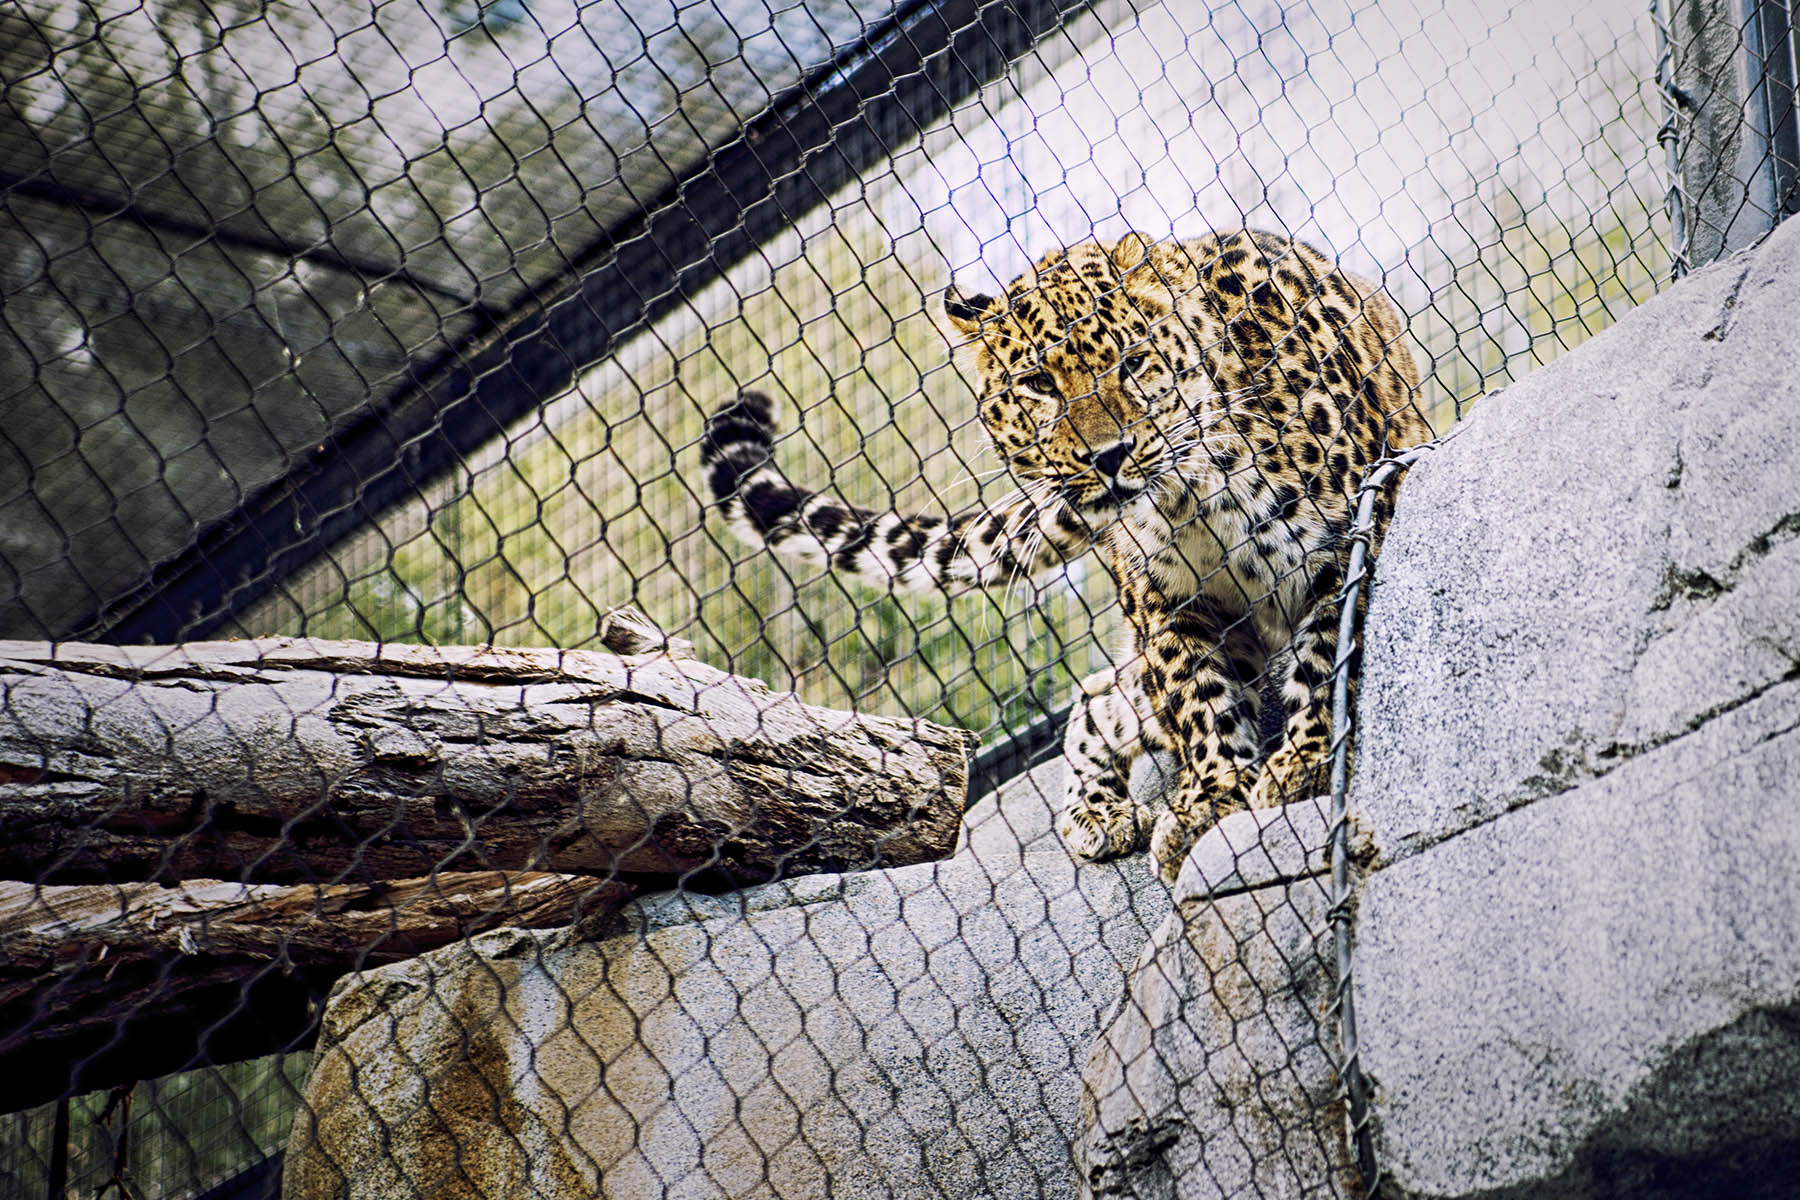 San Diego Zoo and Wild Life Safari Park